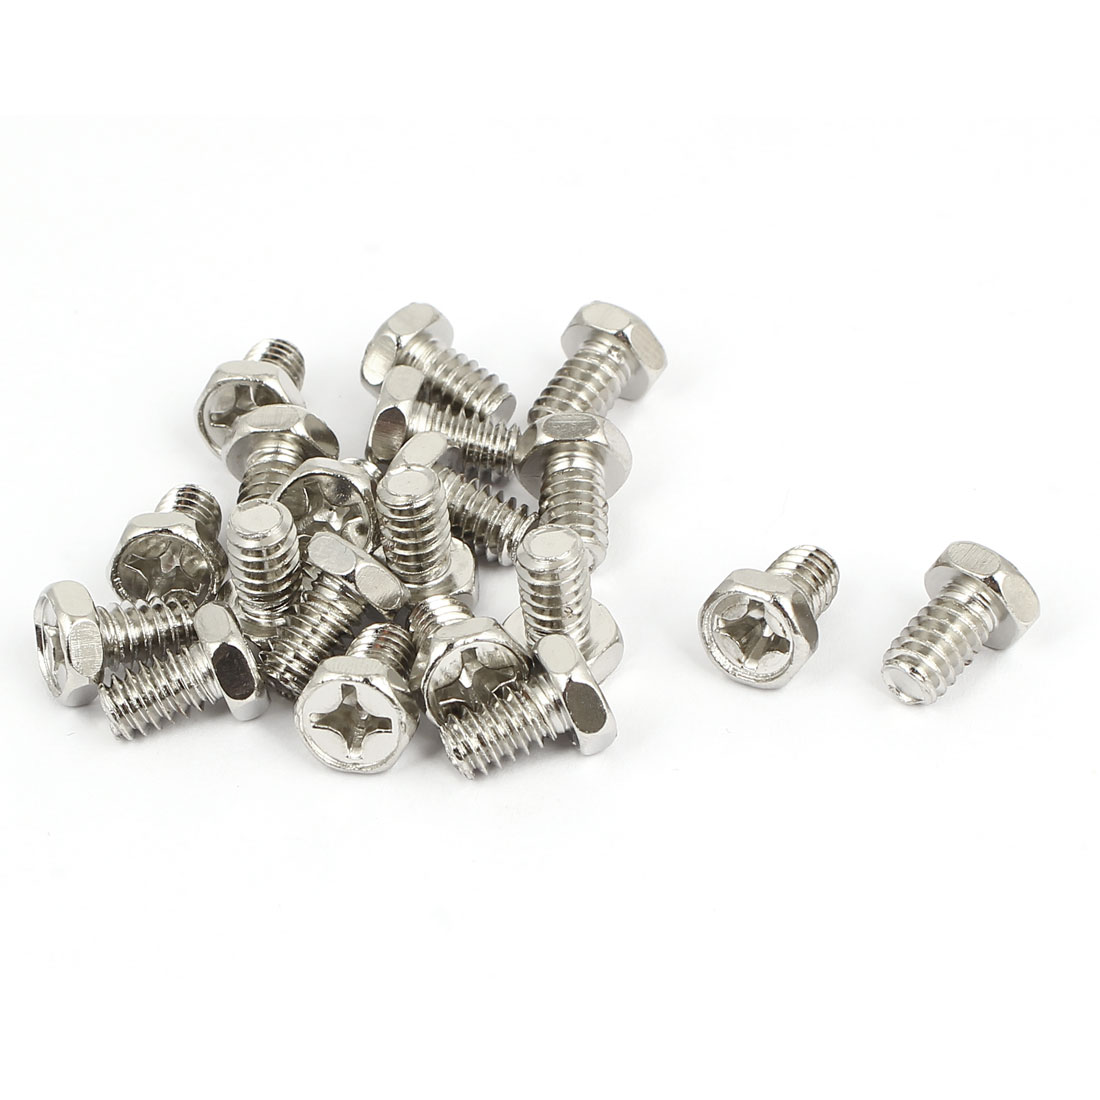 M6 x 1.25mm x 10mm Hex Bolts Tap Phillips Head Screws Fastener Silver Tone 20pcs